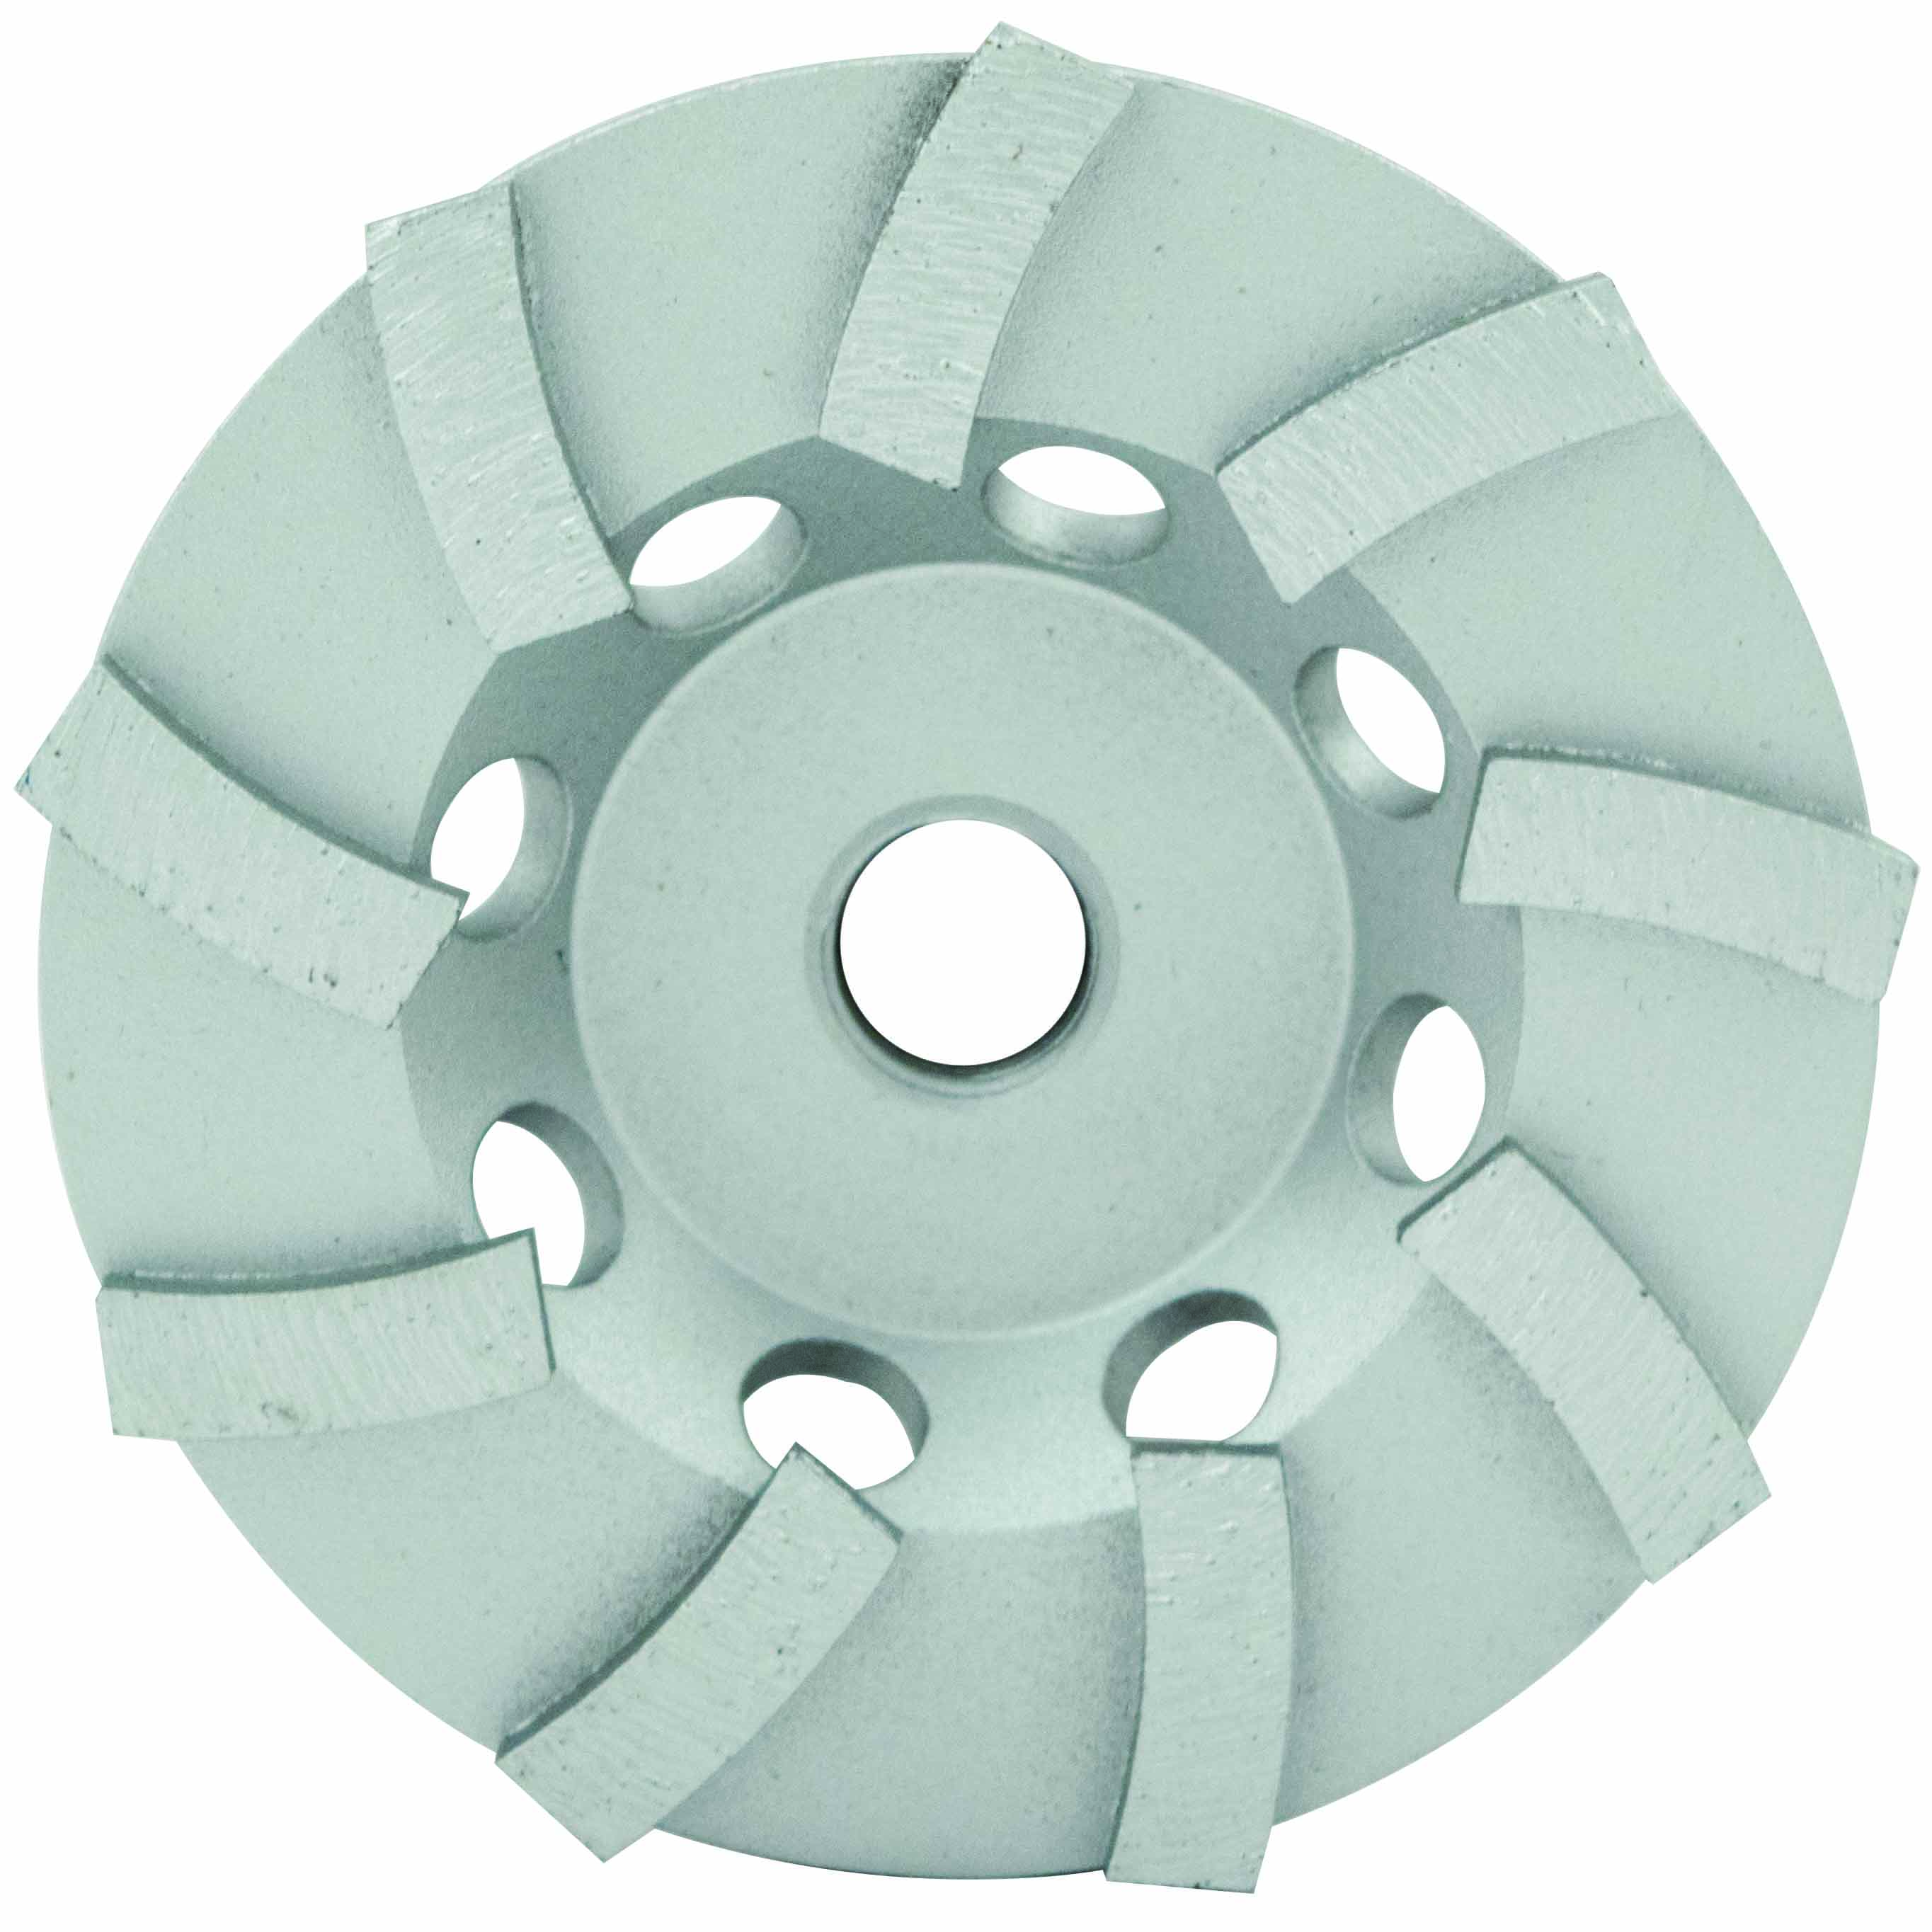 Lackmond SPPGC7DNLP 7in.x5/8-11 Double row cup wheel, low profile  LAC-SPPGC7DNLP